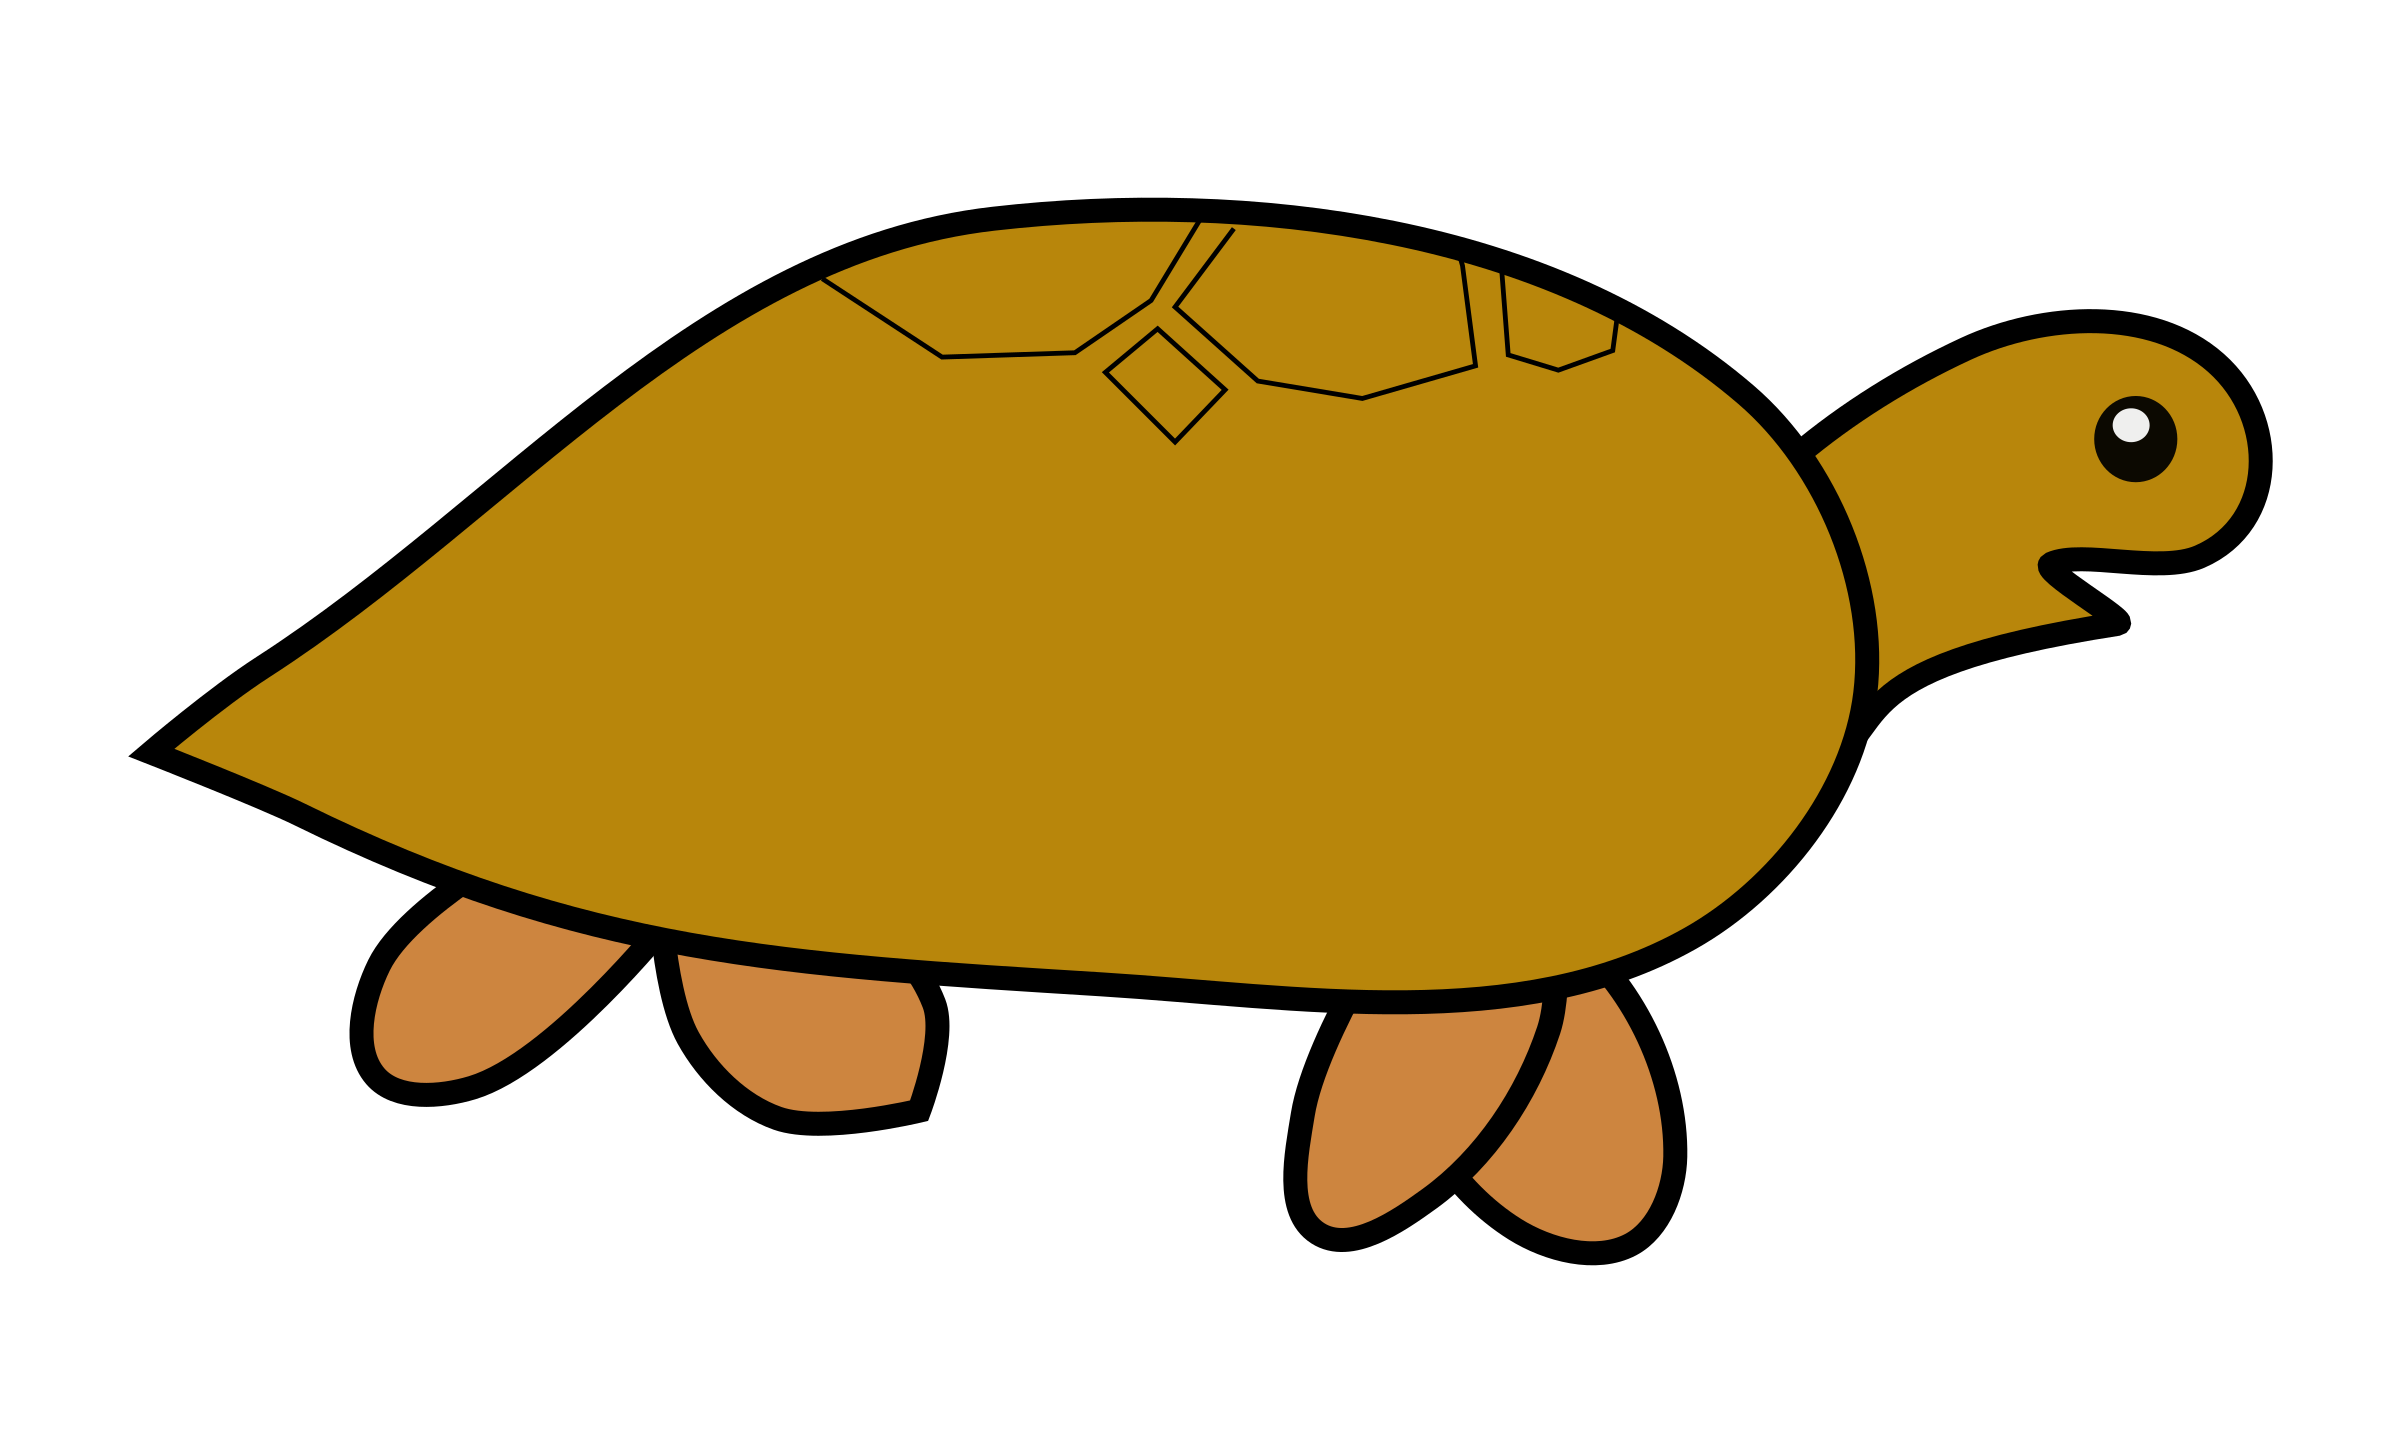 turtle by poonsab